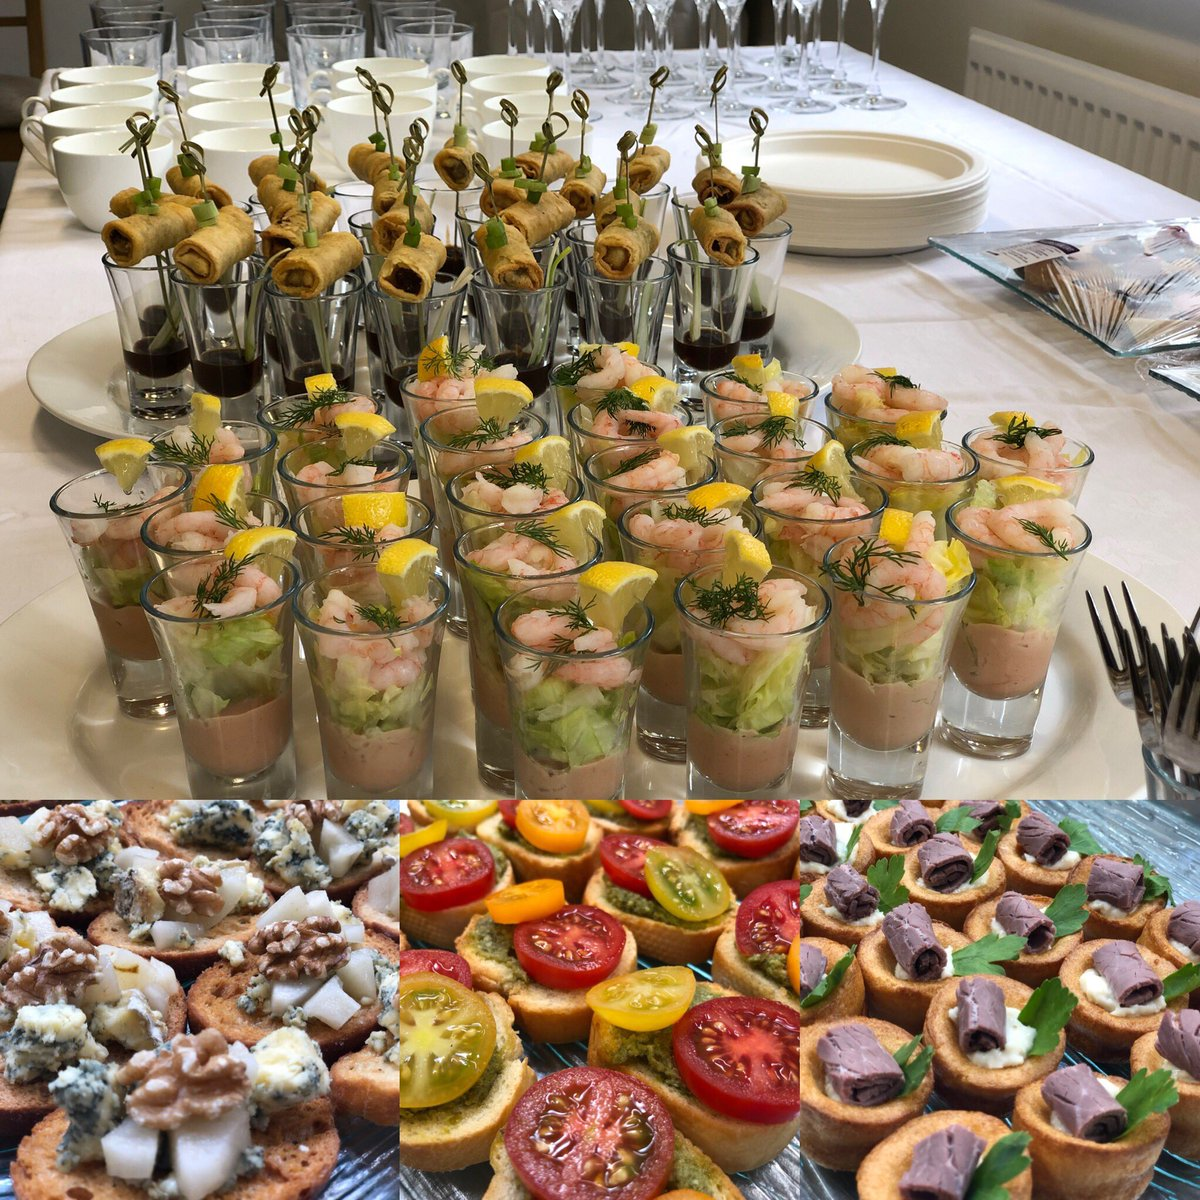 Canapé Steiner Occasion Reg S Cafe Regscafe Twitter